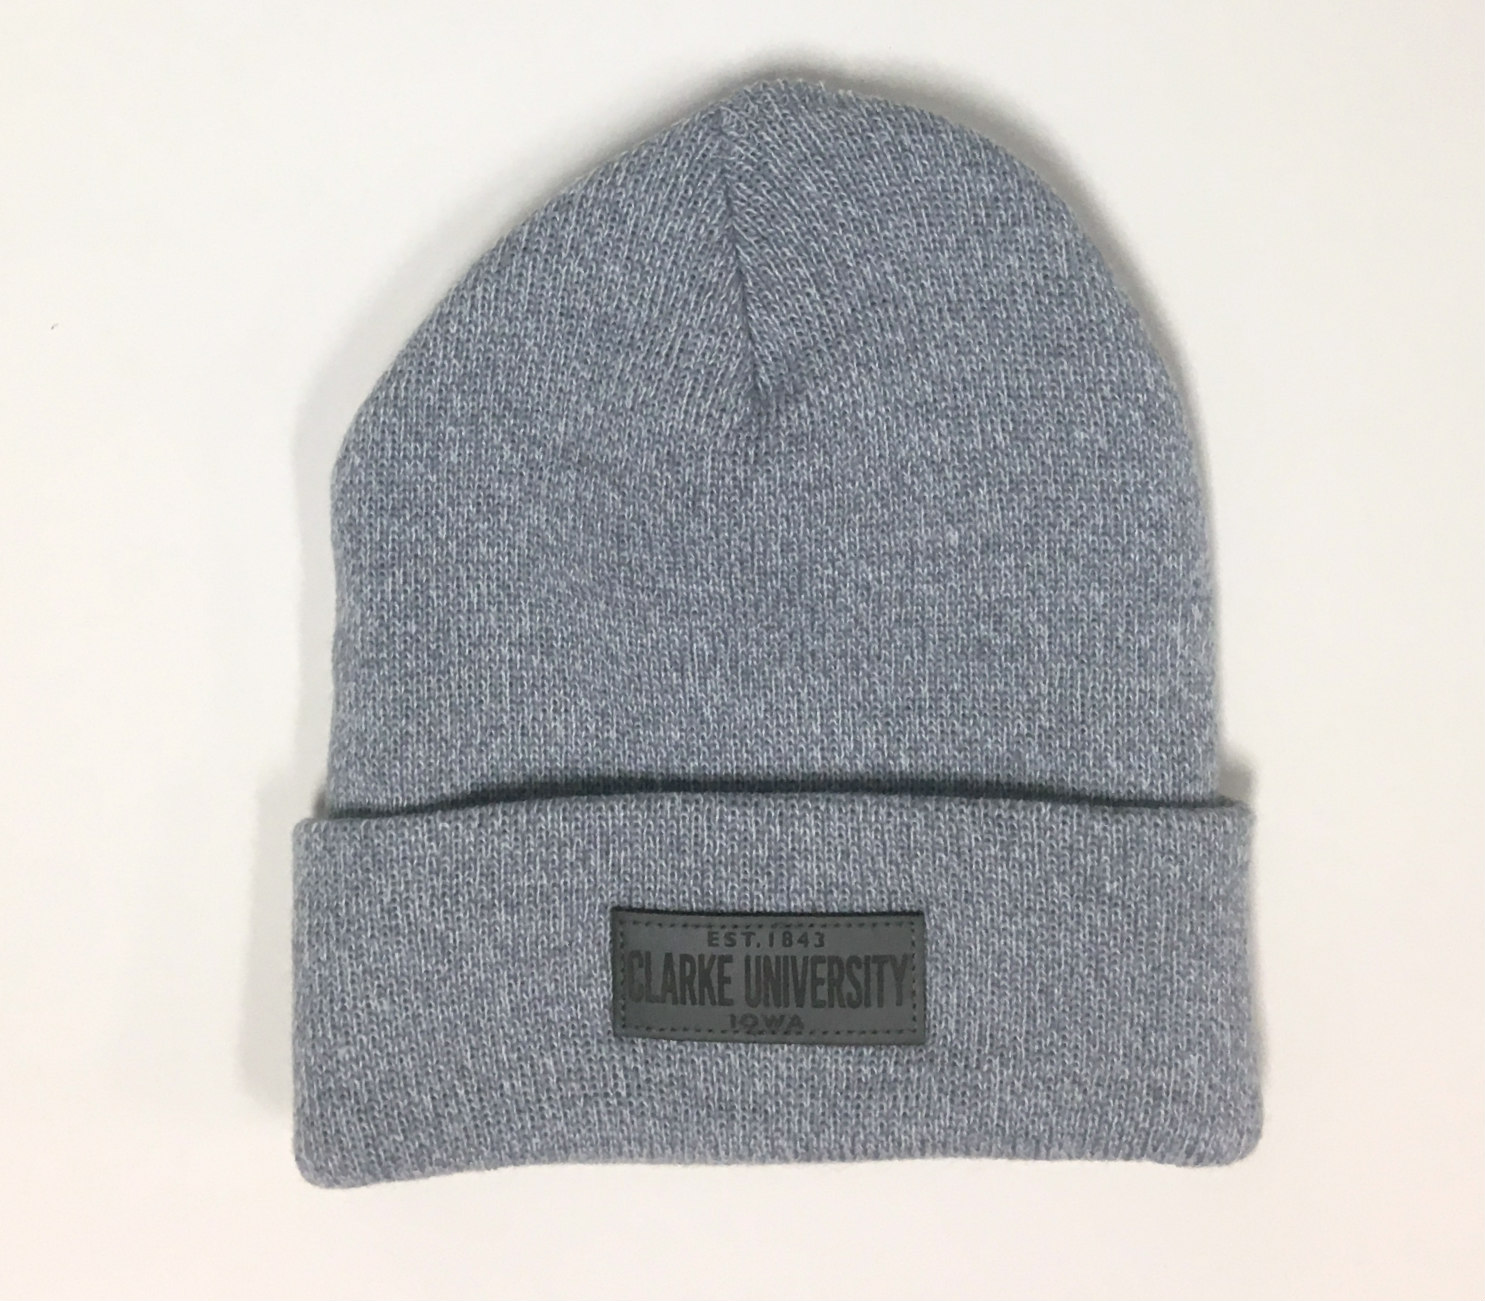 Image for the Marled Rib Knit Cuff Beanie product